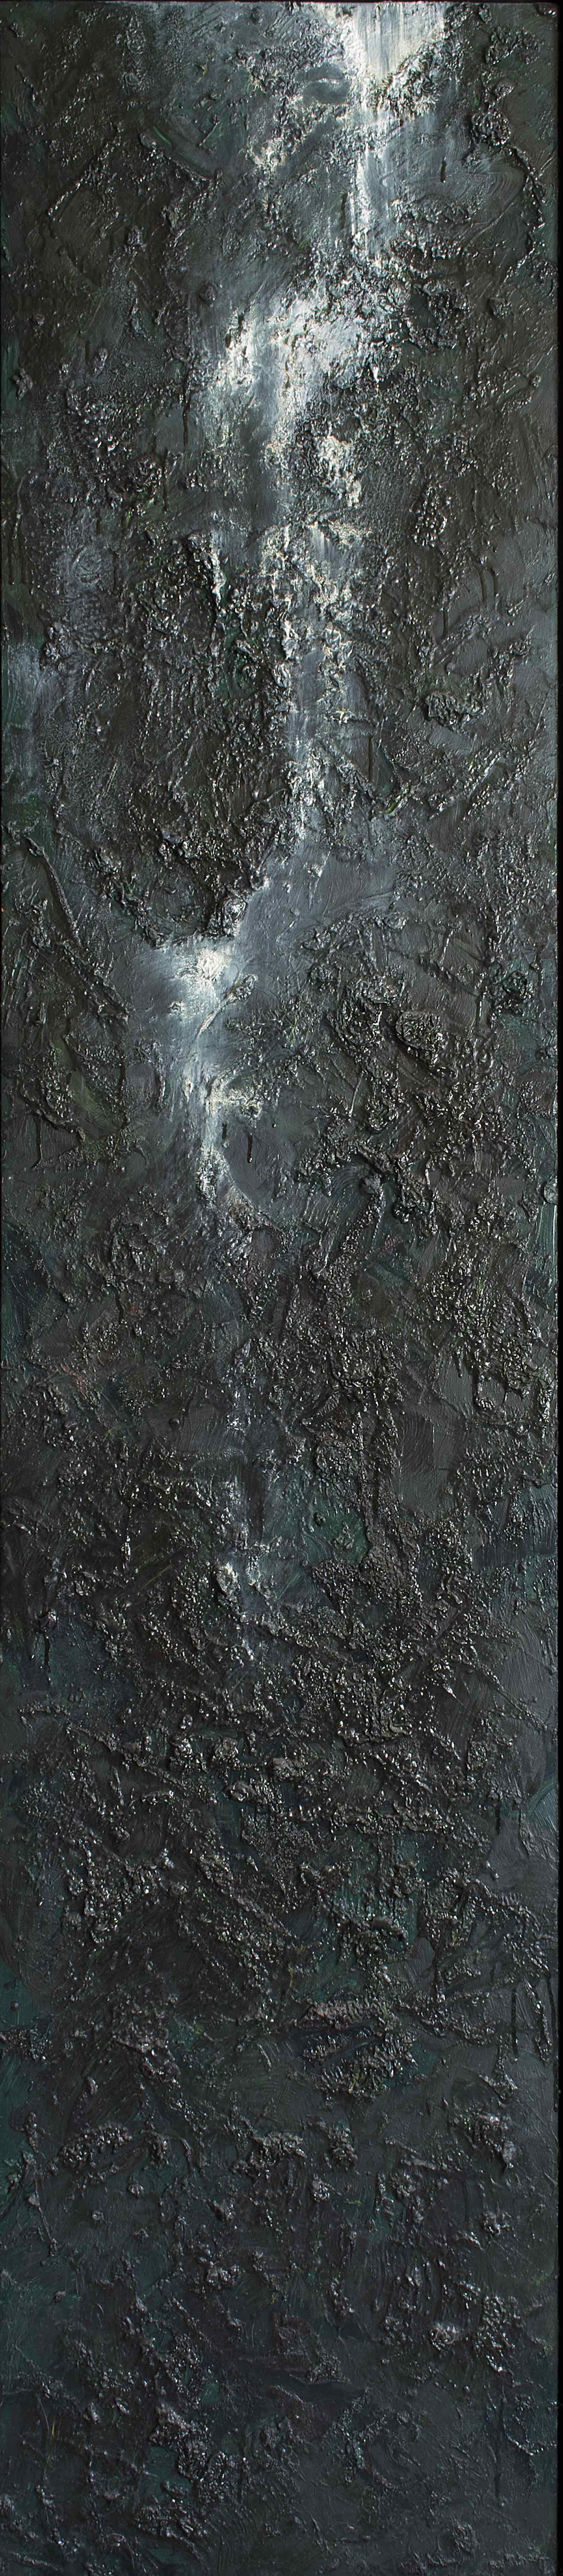 UNTITLED (WATERFALL PAINTING I)